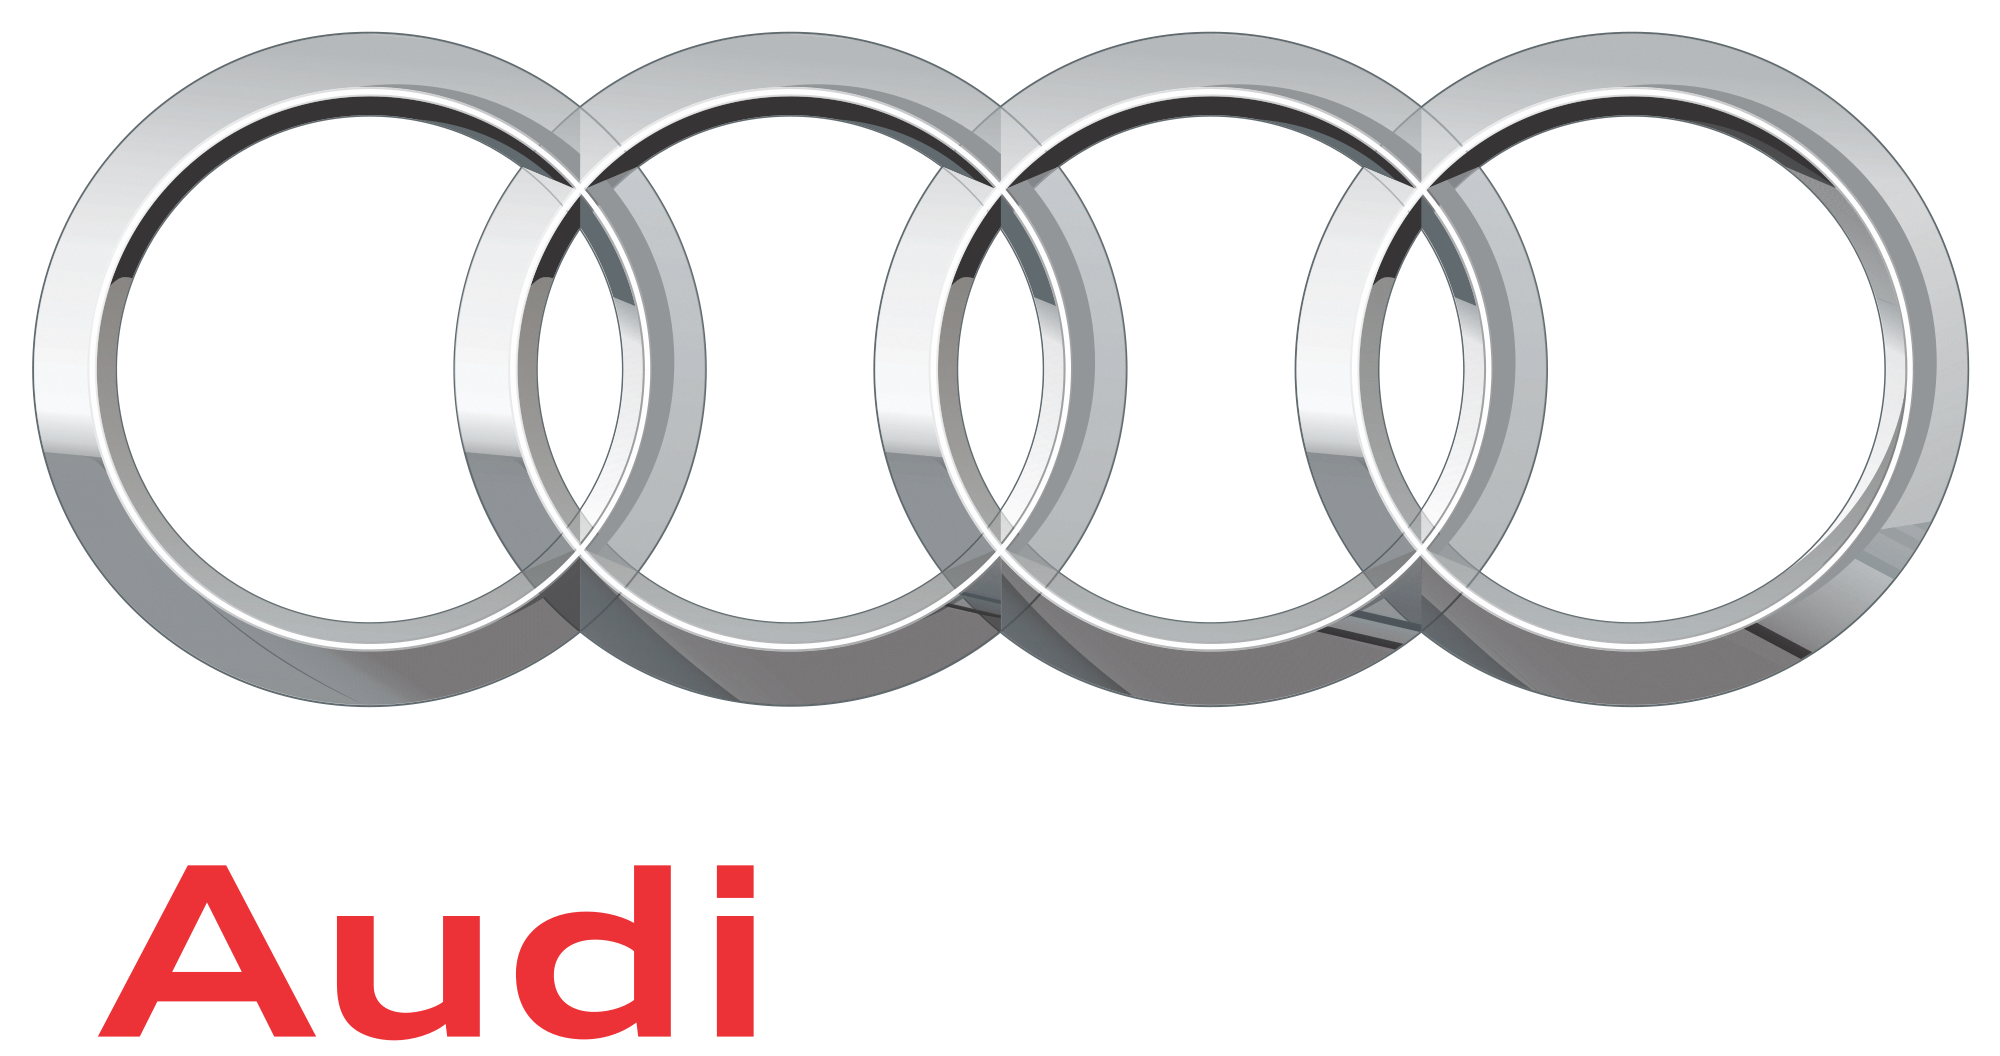 Image Of Logos And Names >> German Car Brands, Companies and Manufacturers | Car Brand Names.com